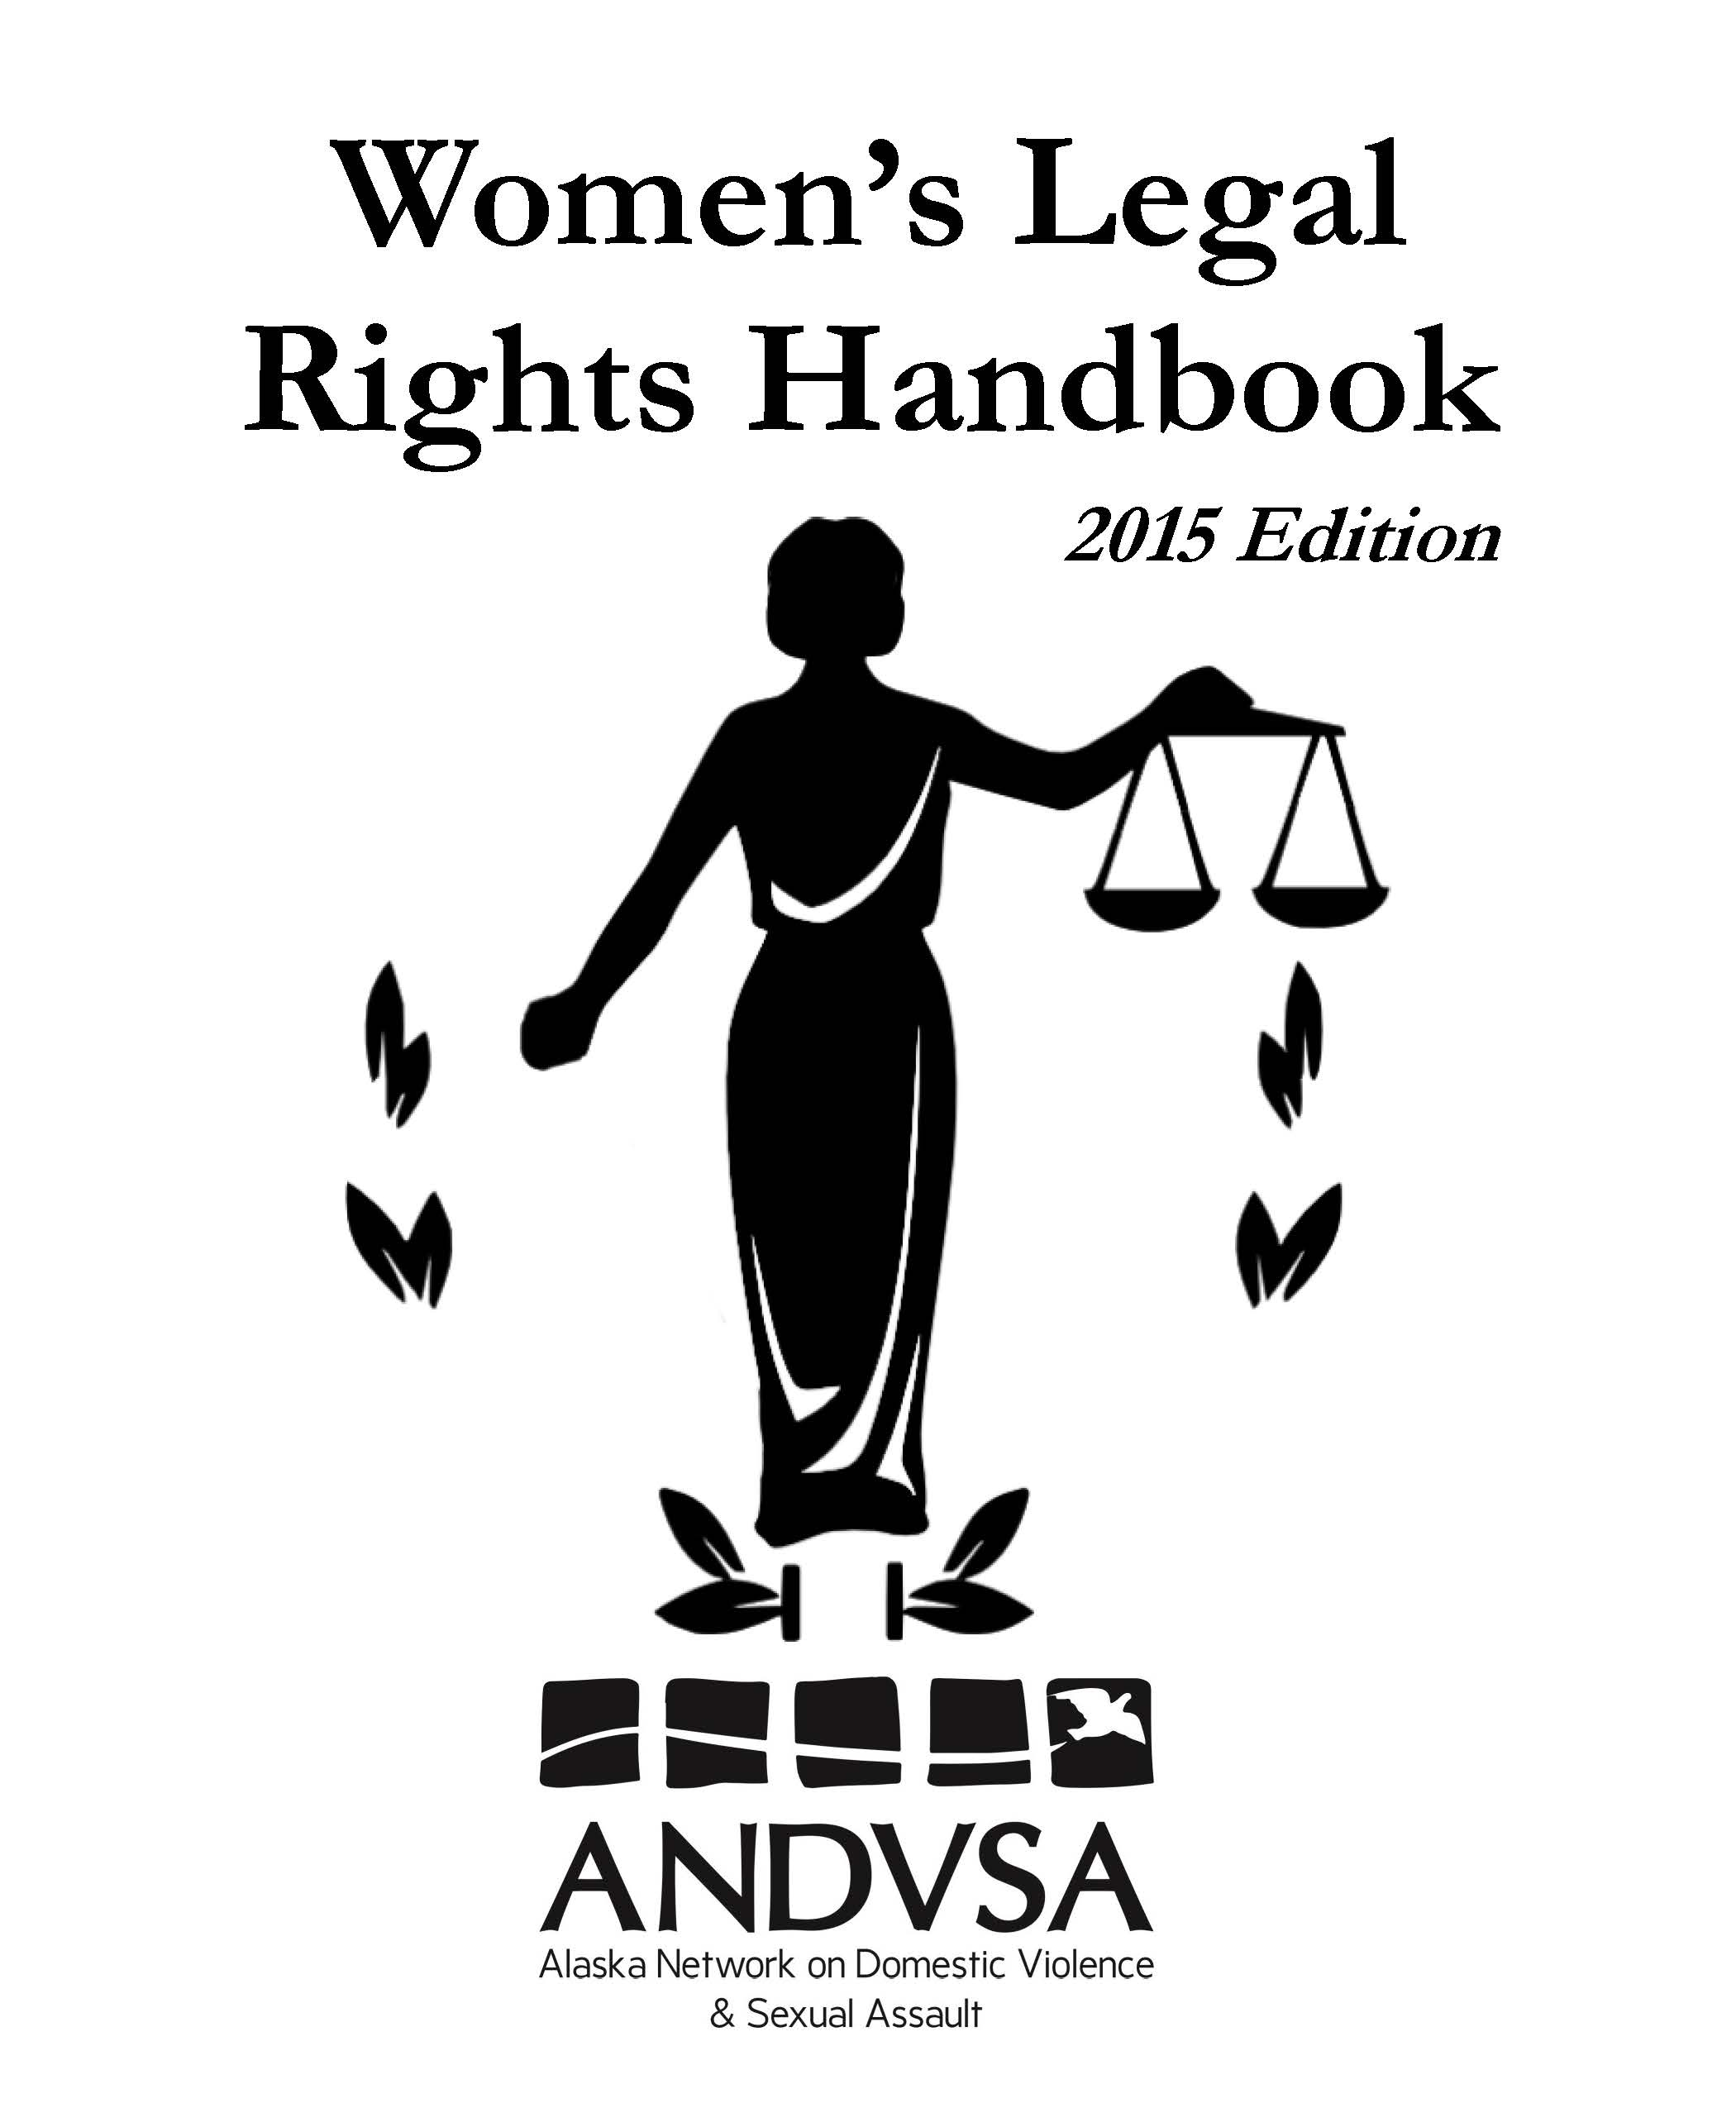 Women's legal rights handbook gets update, publishes